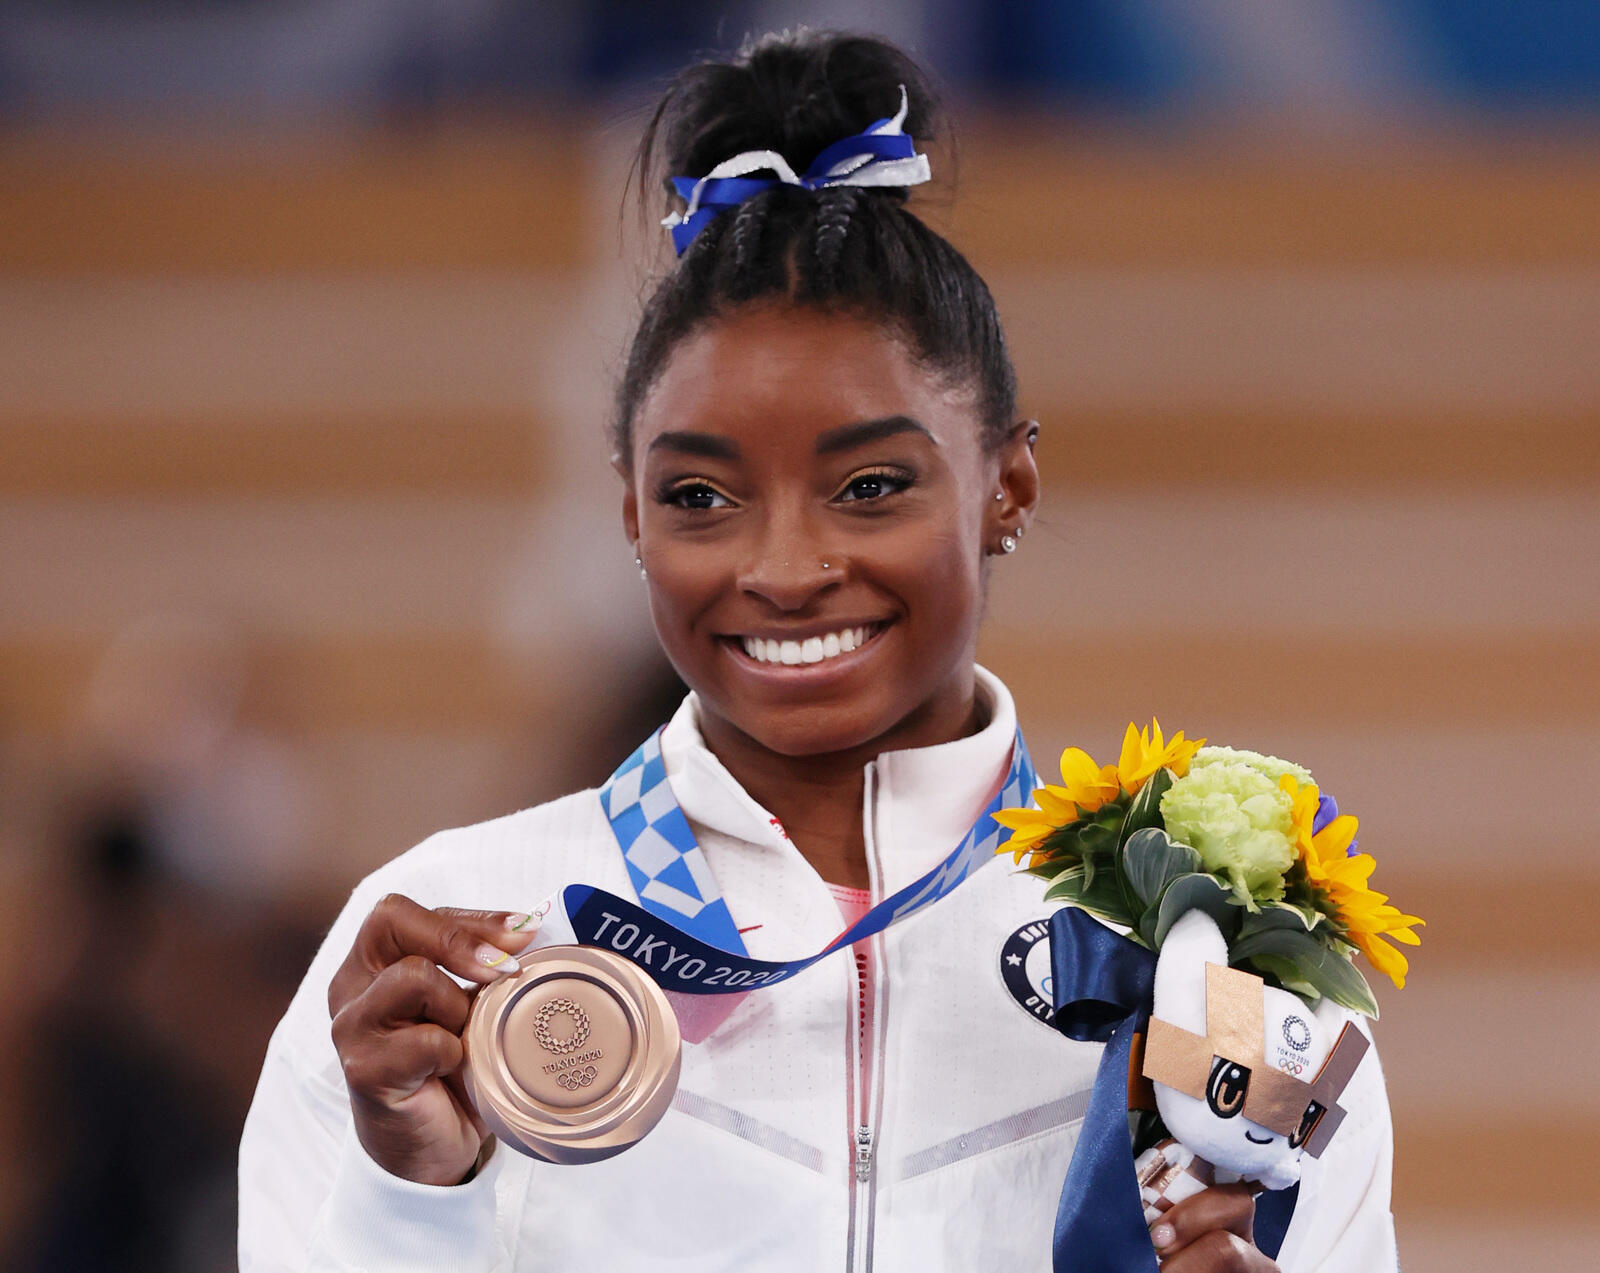 242: 08/03/21 - Simone Biles Wins The Bronze Medal In The Women's Balance Beam Final Following Her Exit From The Team Final